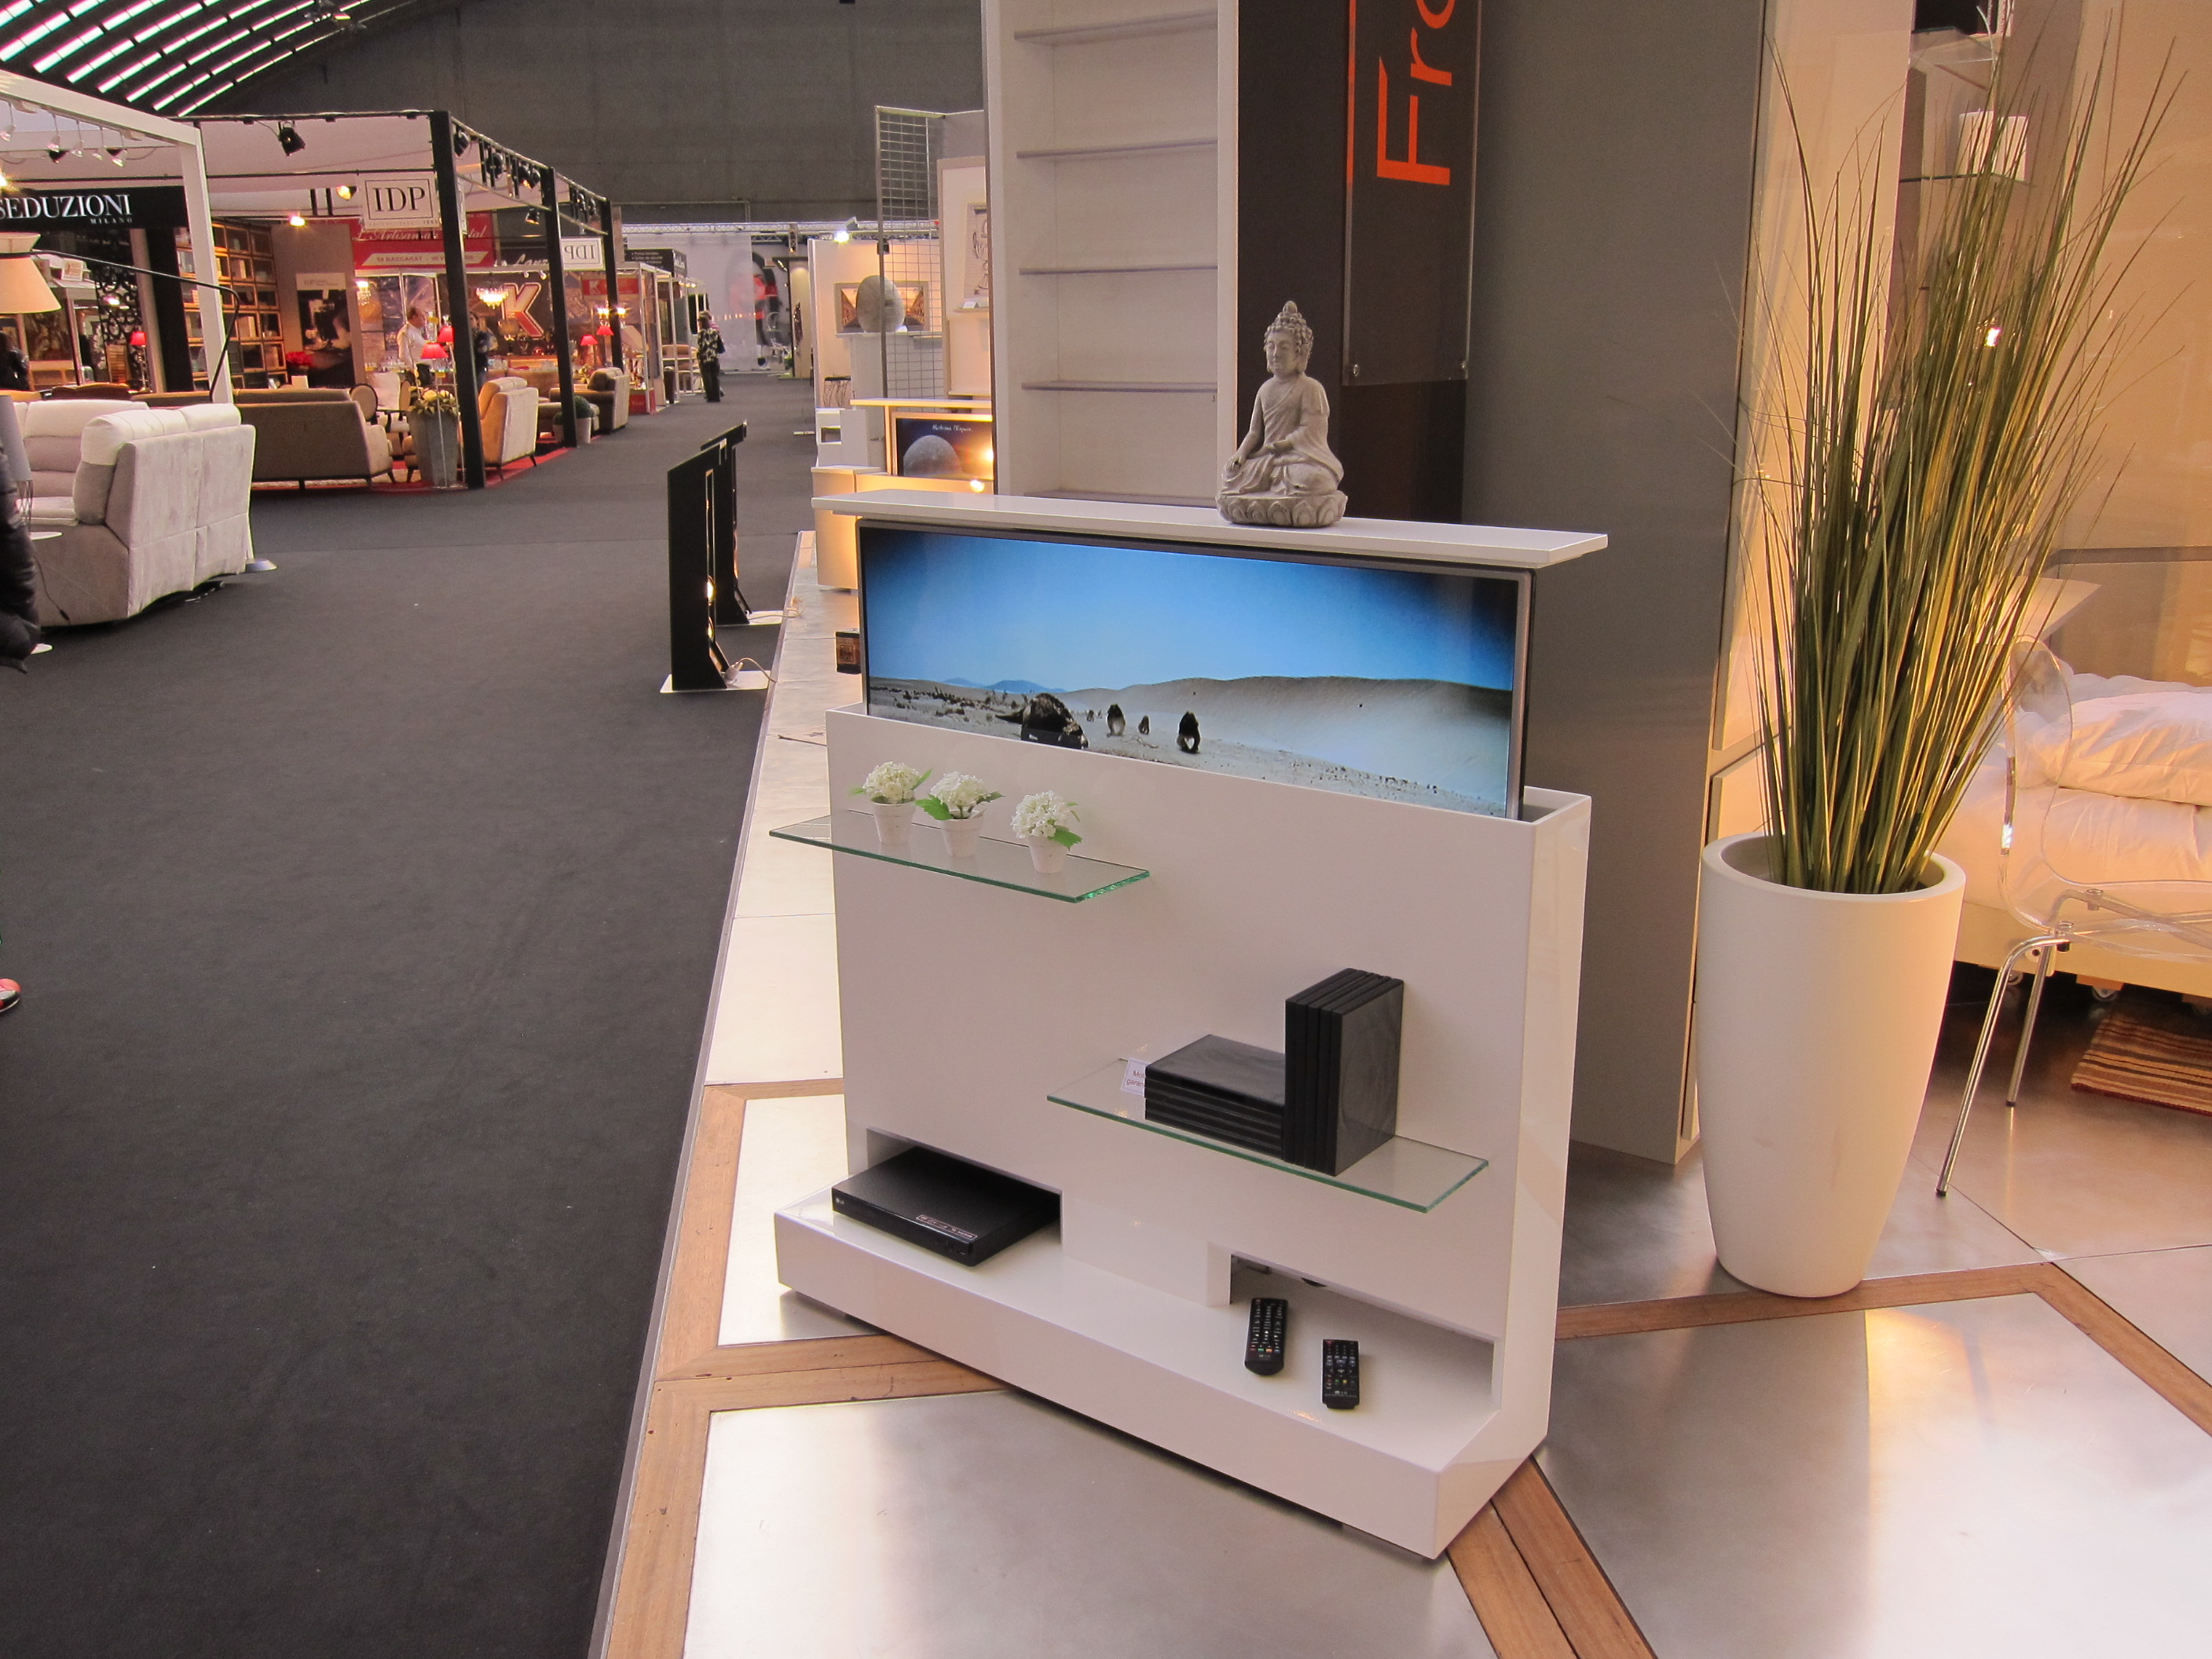 Meuble Tv Escamotable Design - Le Mobilier Gain De Place Fran Ois Desile[mjhdah]http://www.beerandrail.com/wp-content/uploads/2018/02/meuble-tele-darty-luxury-meuble-tele-escamotable-lit-avec-television-escamotable-6-of-meuble-tele-darty.jpg